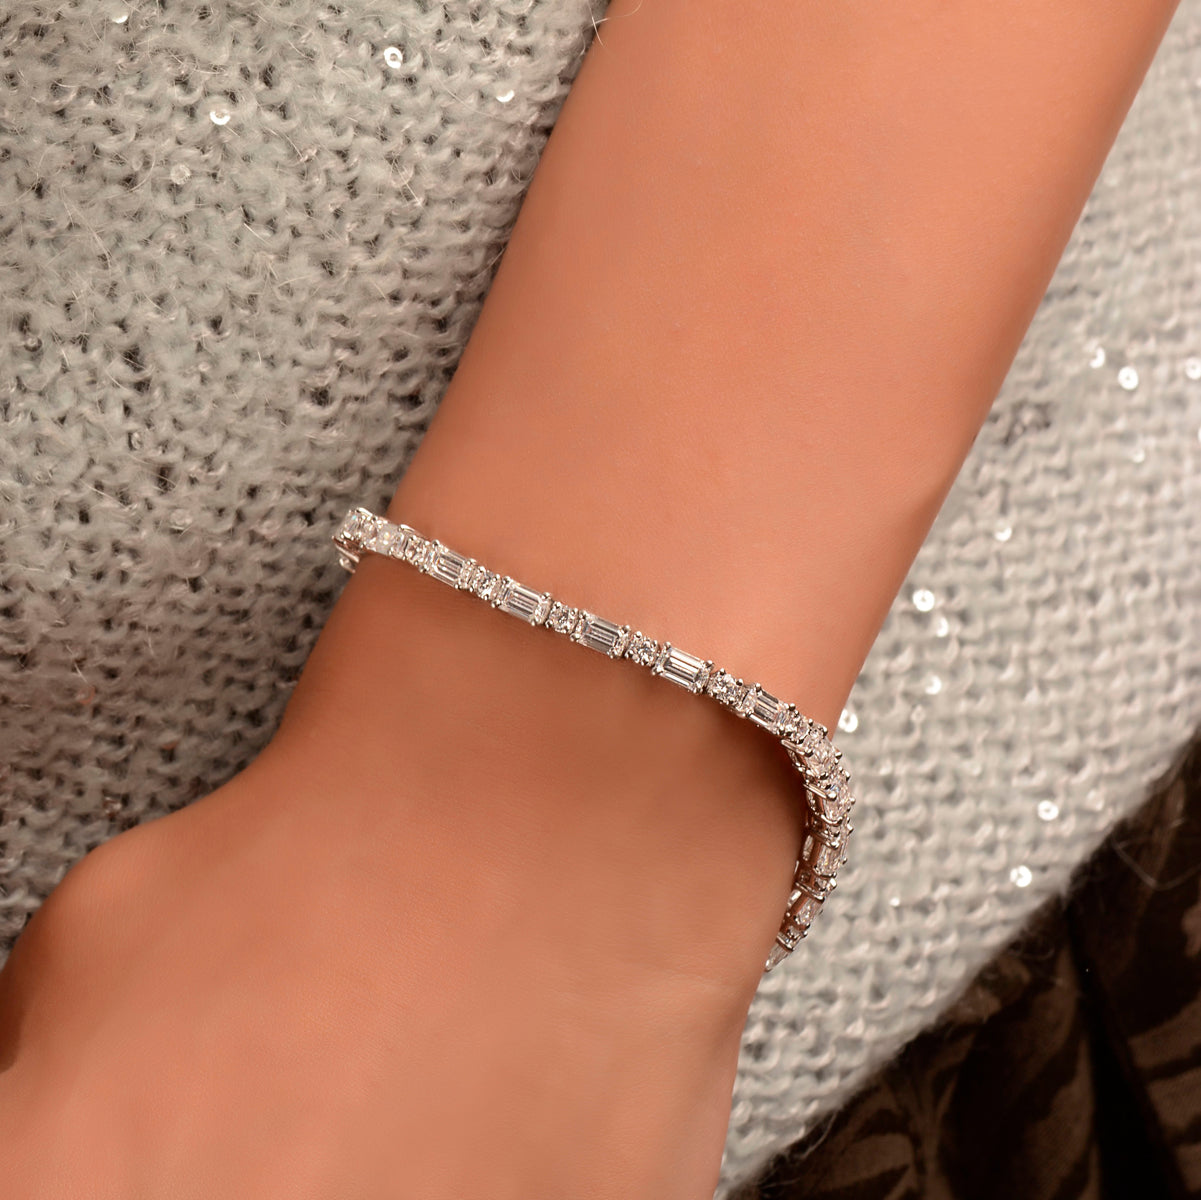 boutique beautiful rhinestone perfect is would flashy row tennis anklet be this new a pin layer ankle m bracelet